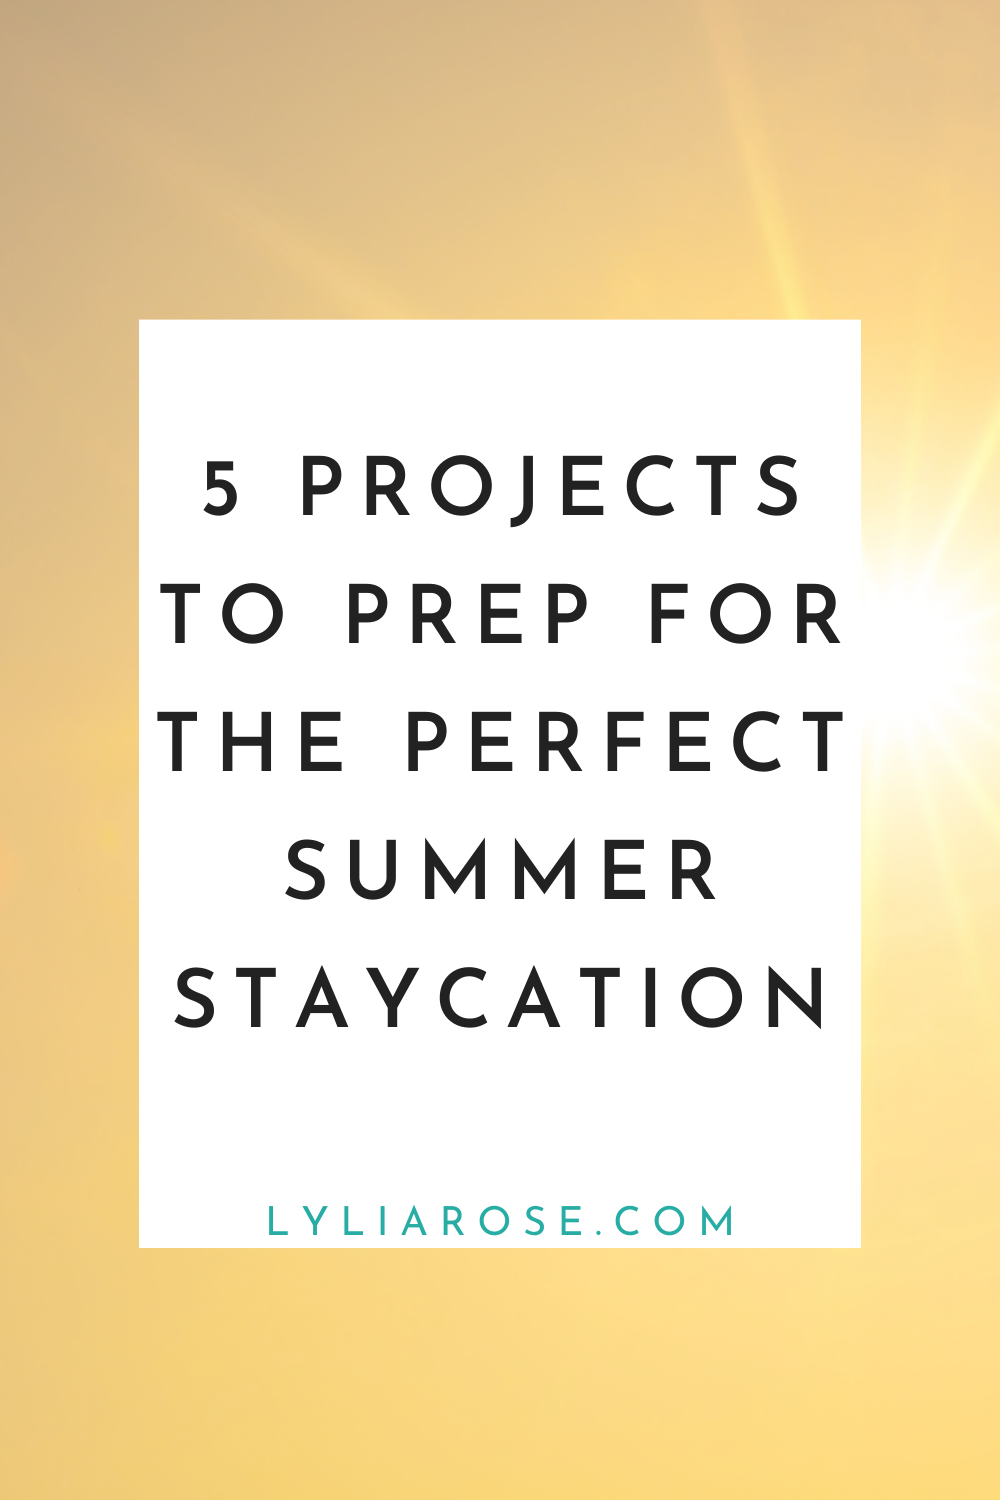 5 projects to prep for the perfect summer staycation